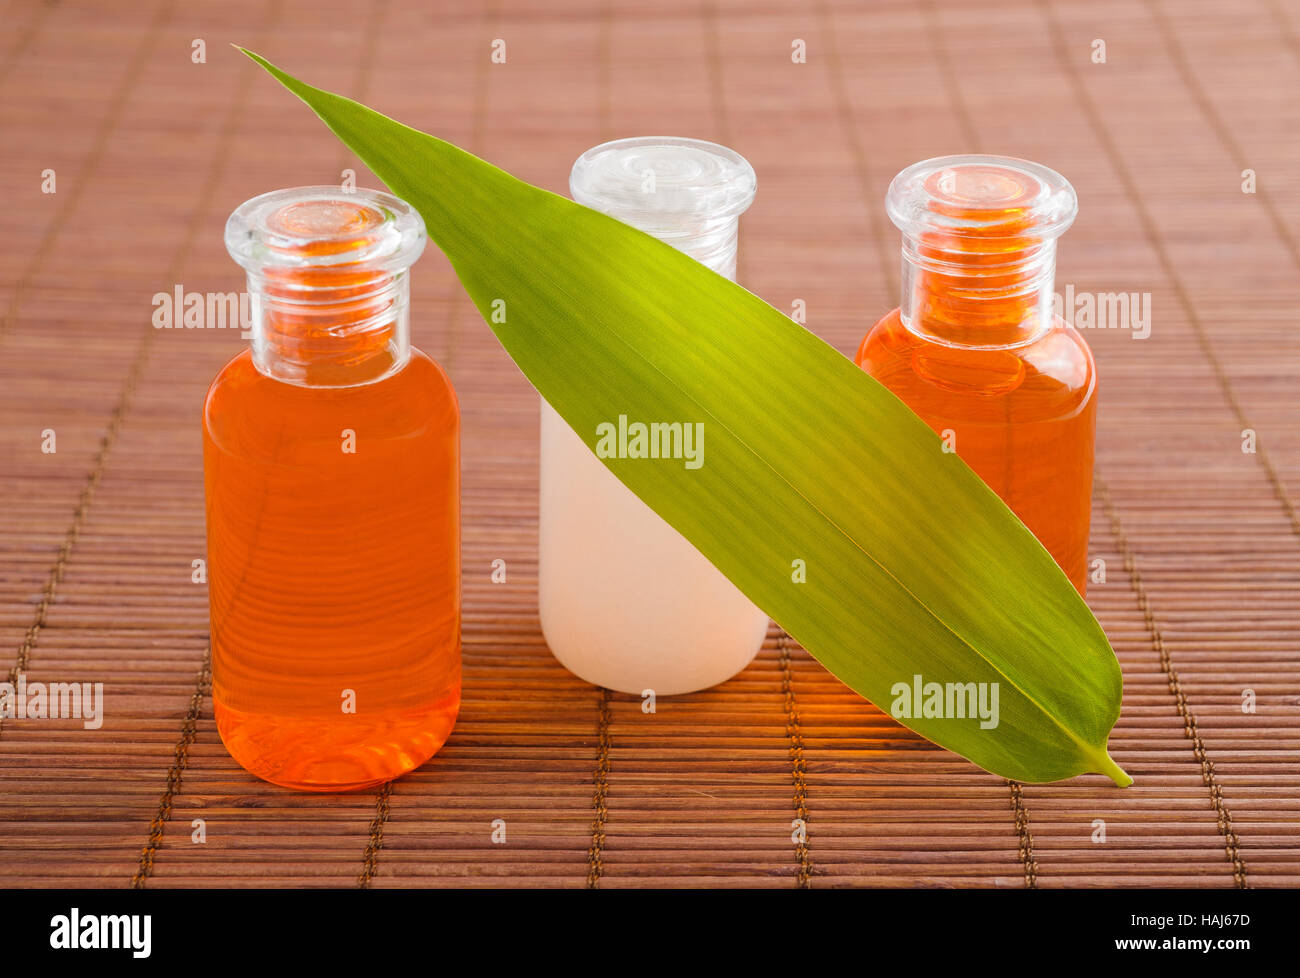 Bamboo Products Stock Photos & Bamboo Products Stock Images - Alamy